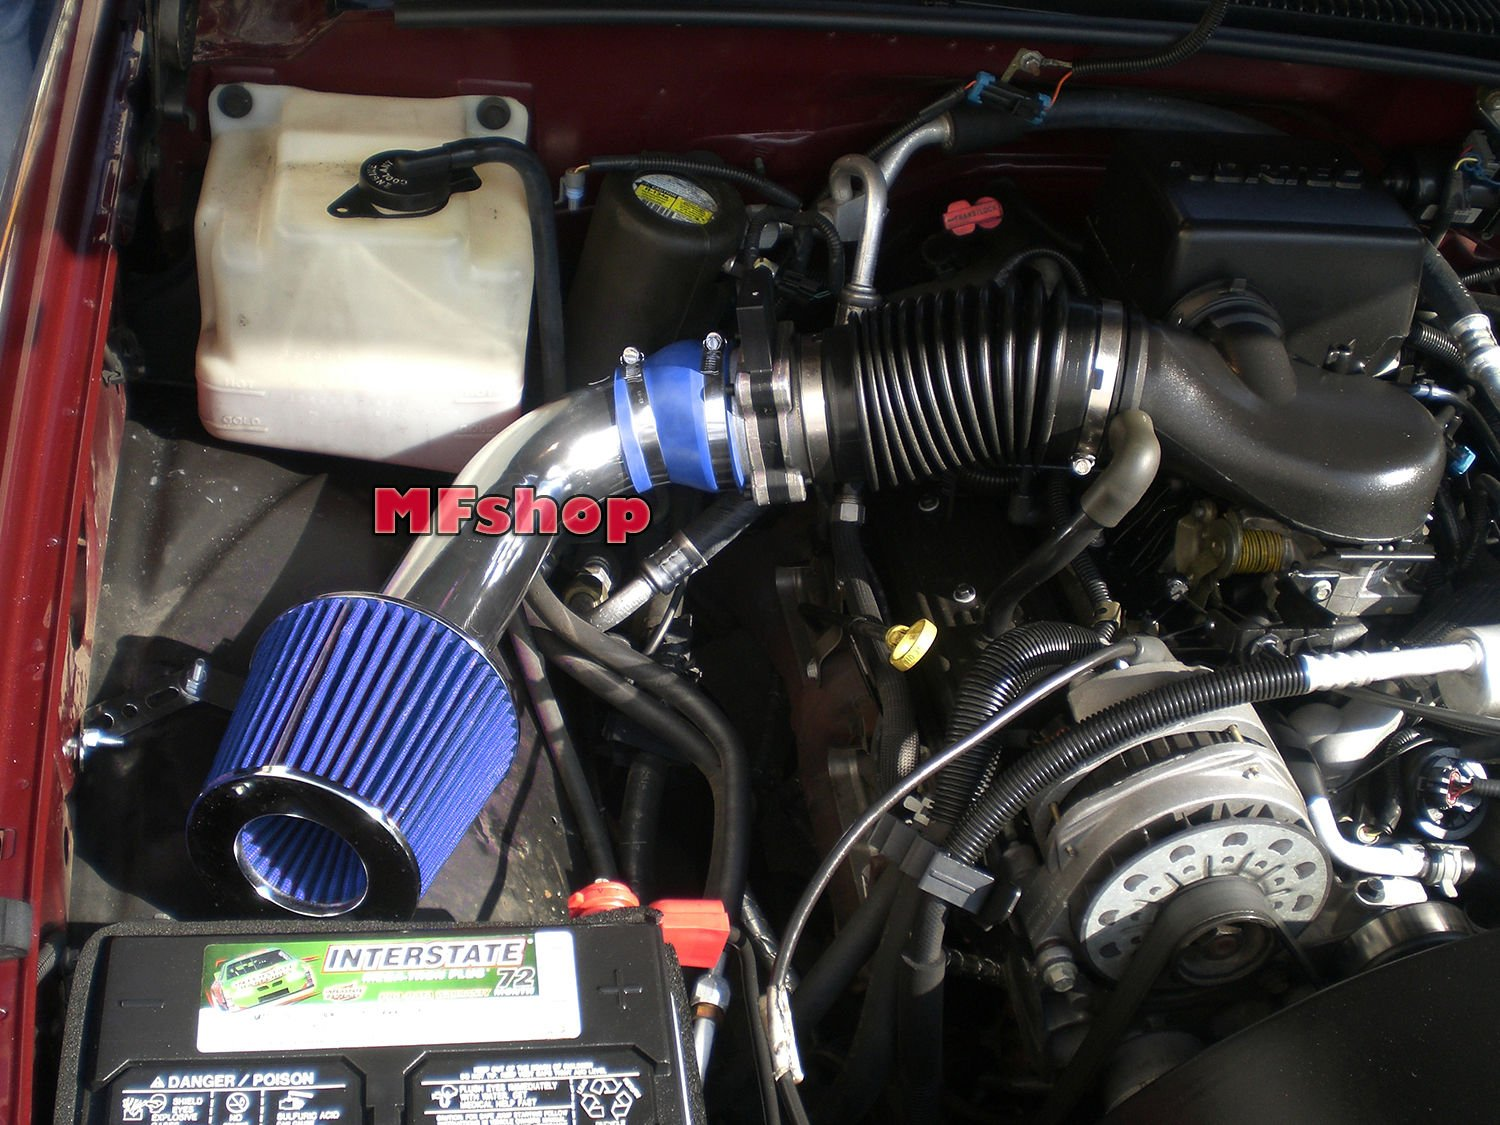 Blue Filter Accessories 1996 1997 1998 1999 2000 Chevy Tahoe 5.0L 5.7L V8 Air Intake Filter Kit System